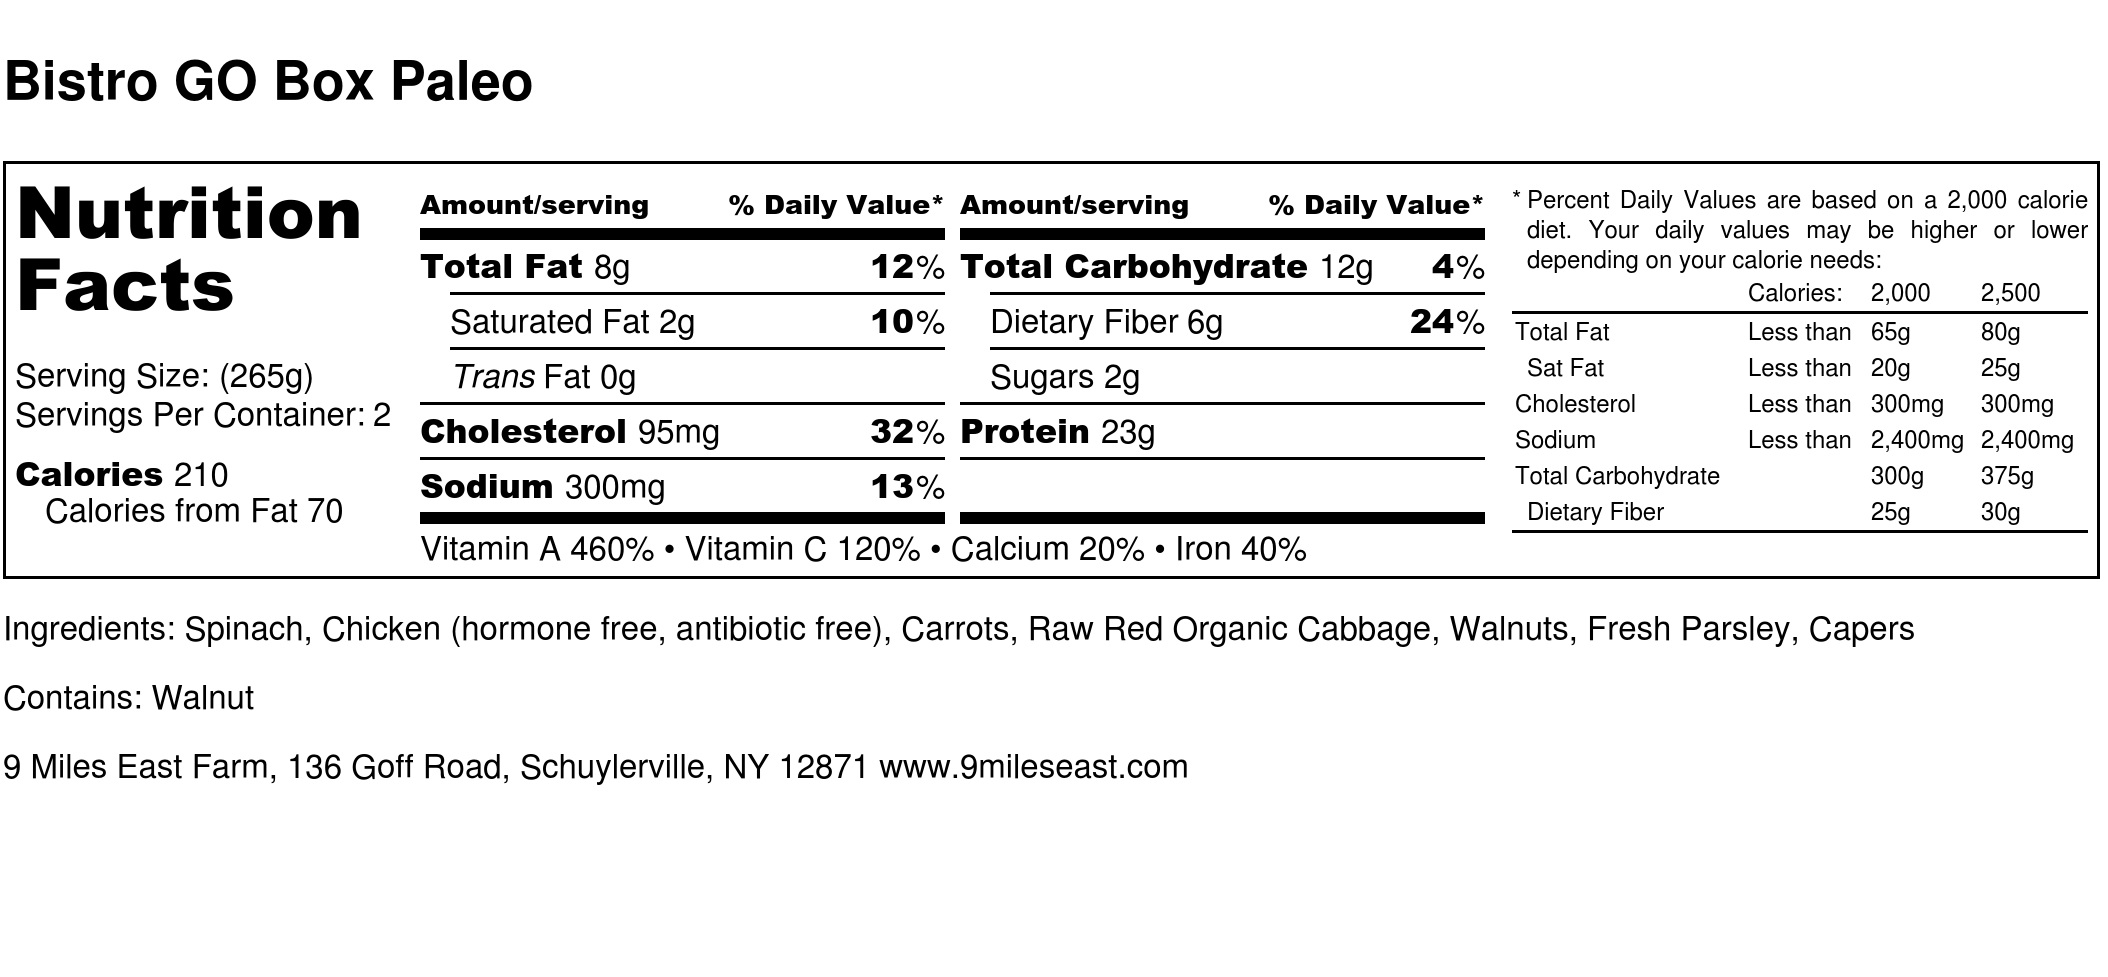 Bistro GO Box Paleo - Nutrition Label.jpg